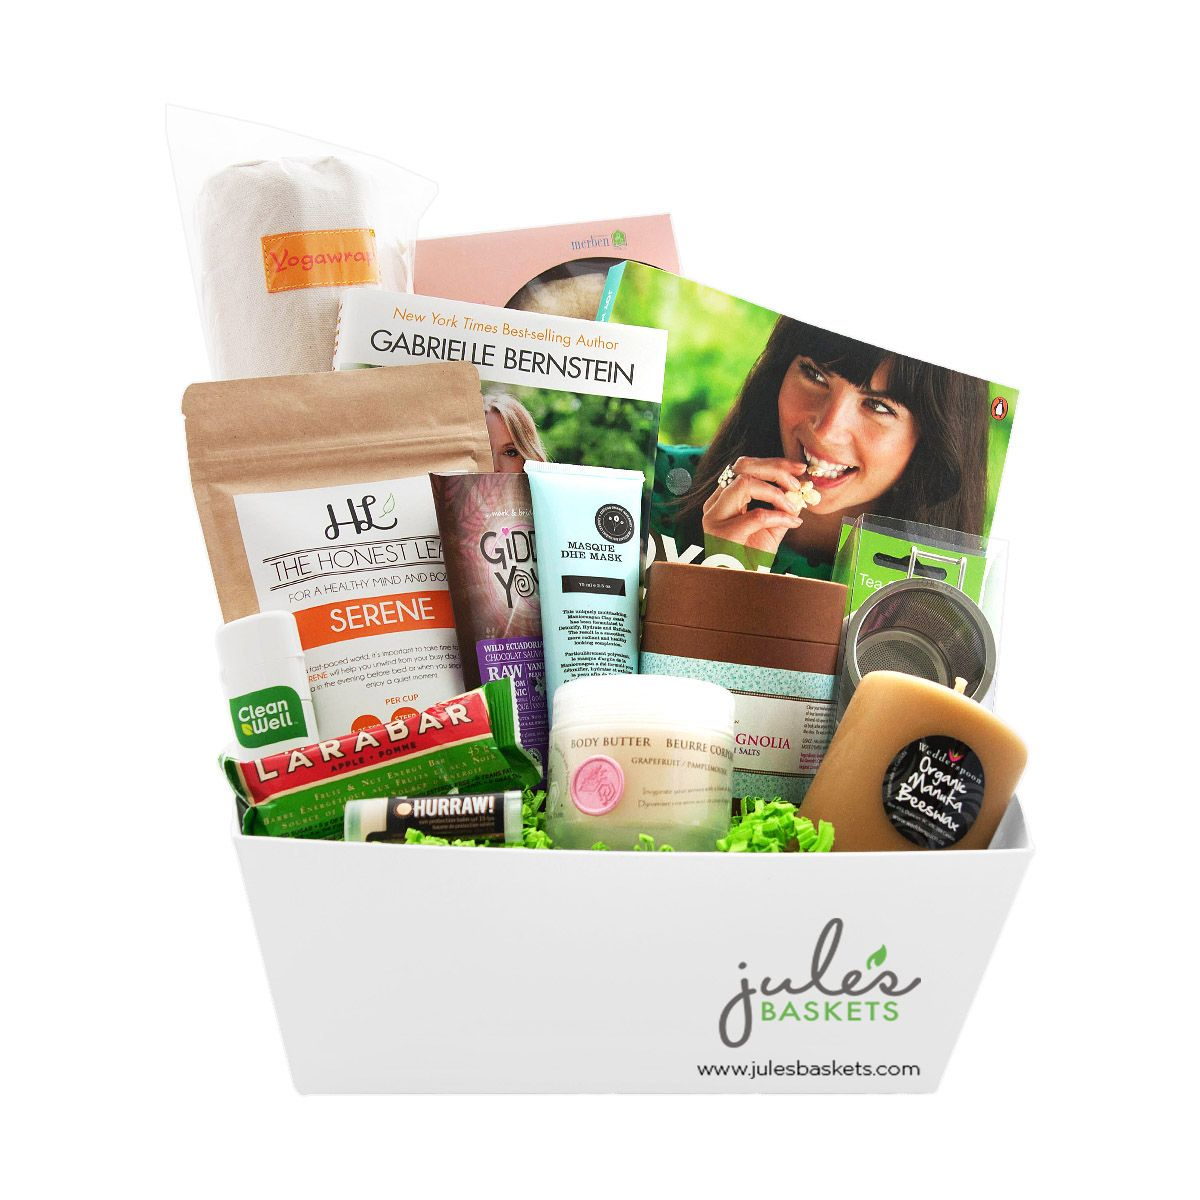 Wellness basket 26799 by jules baskets well whole rr a wide assortment of healthy and unique wellness gift baskets appropriate for any gift giving occasion gluten free organic vegan non gmo negle Images